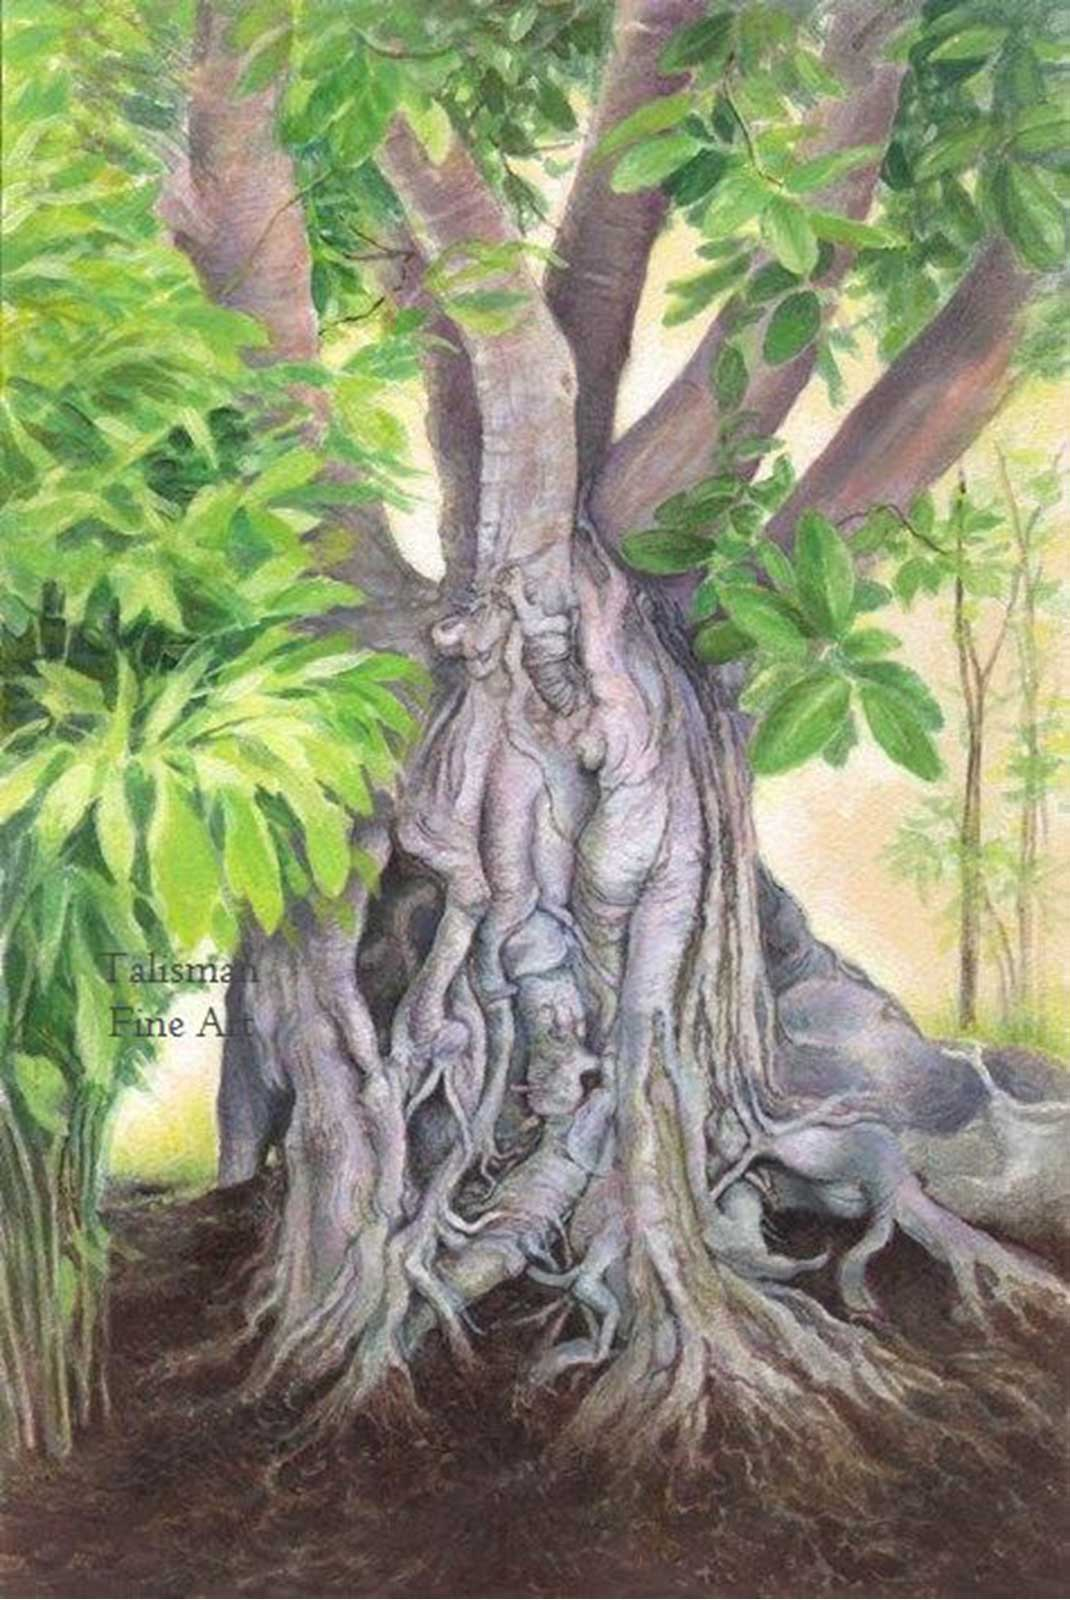 Talusman Fine Art Lynn Paula Russell - Banyan (We have a full selection of her works on this website)